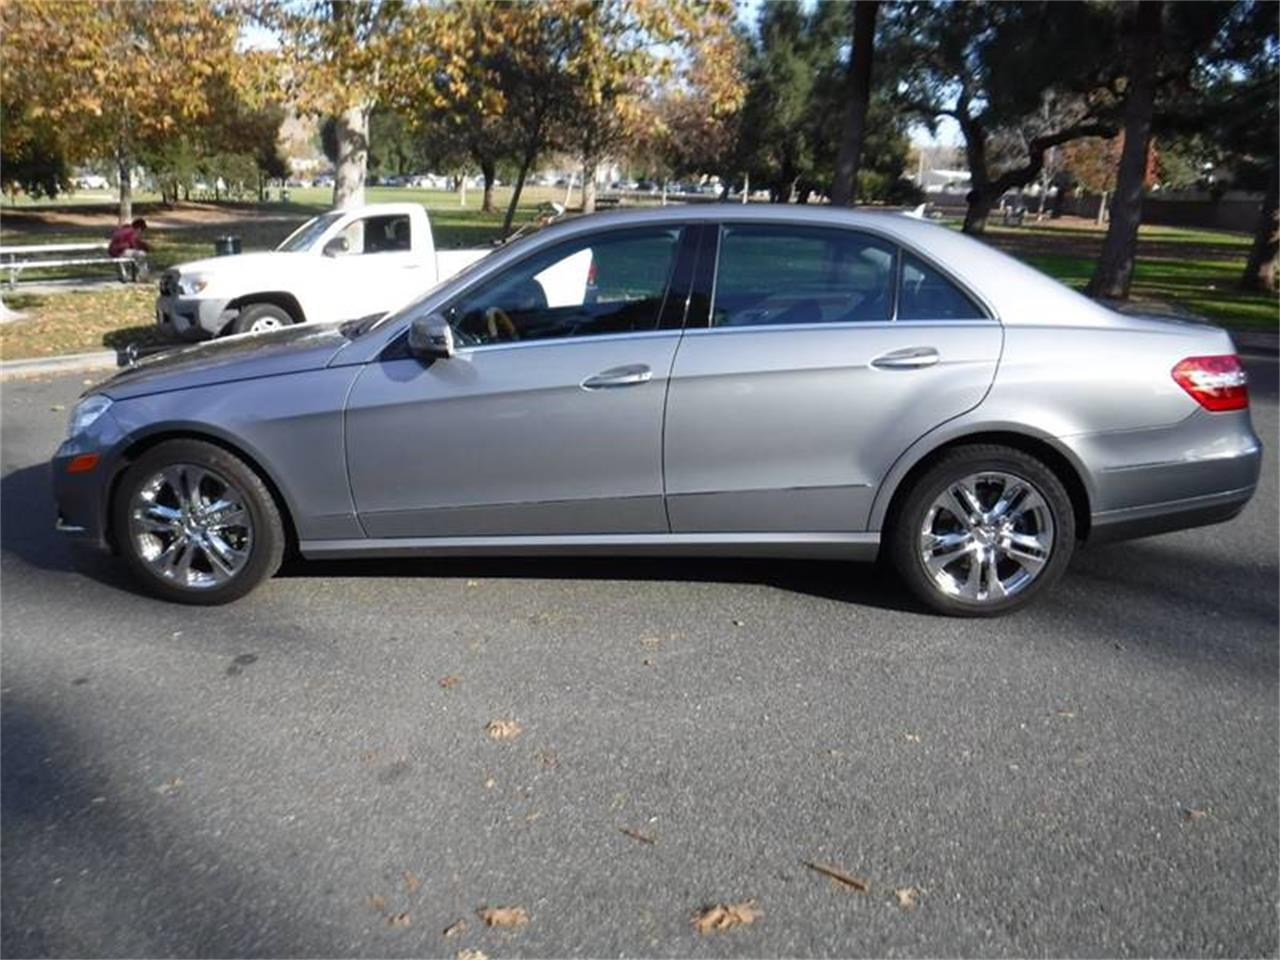 2010 Mercedes-Benz E-Class for sale in Thousand Oaks, CA – photo 8